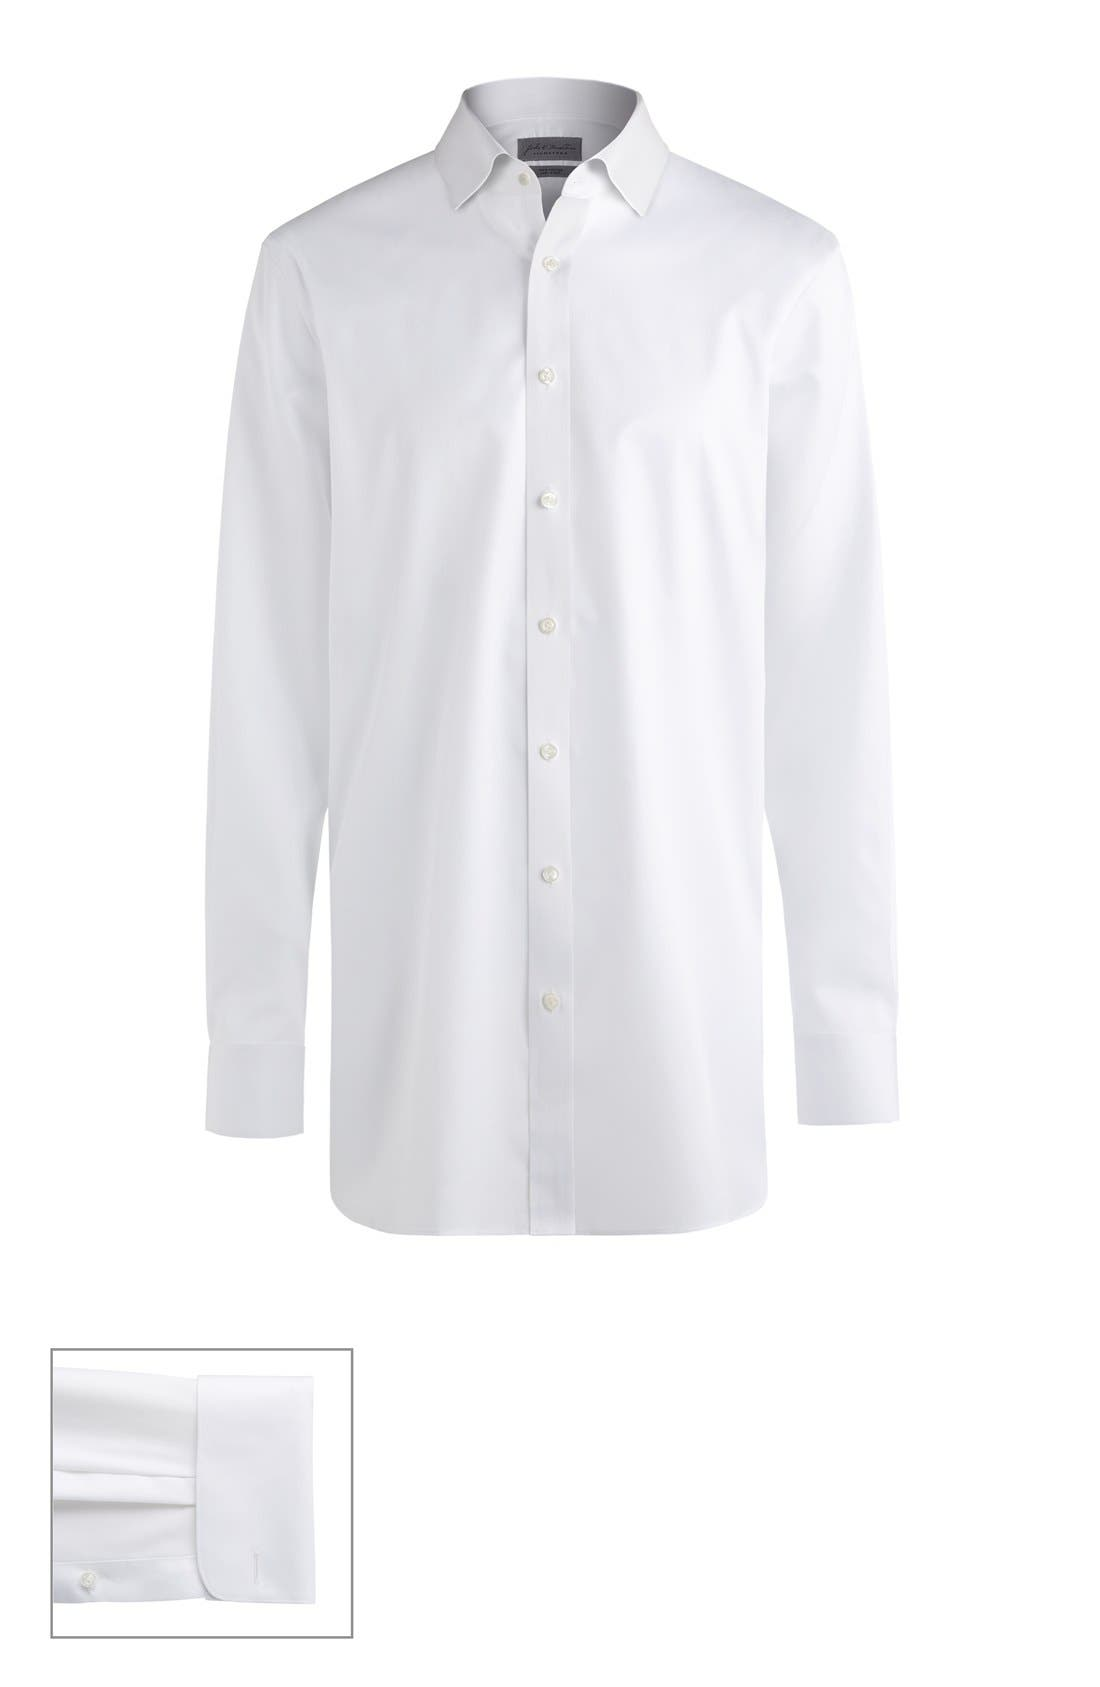 Made to Measure Extra Trim Fit Short Spread Collar Solid Dress Shirt,                             Main thumbnail 1, color,                             WHITE FINE TWILL